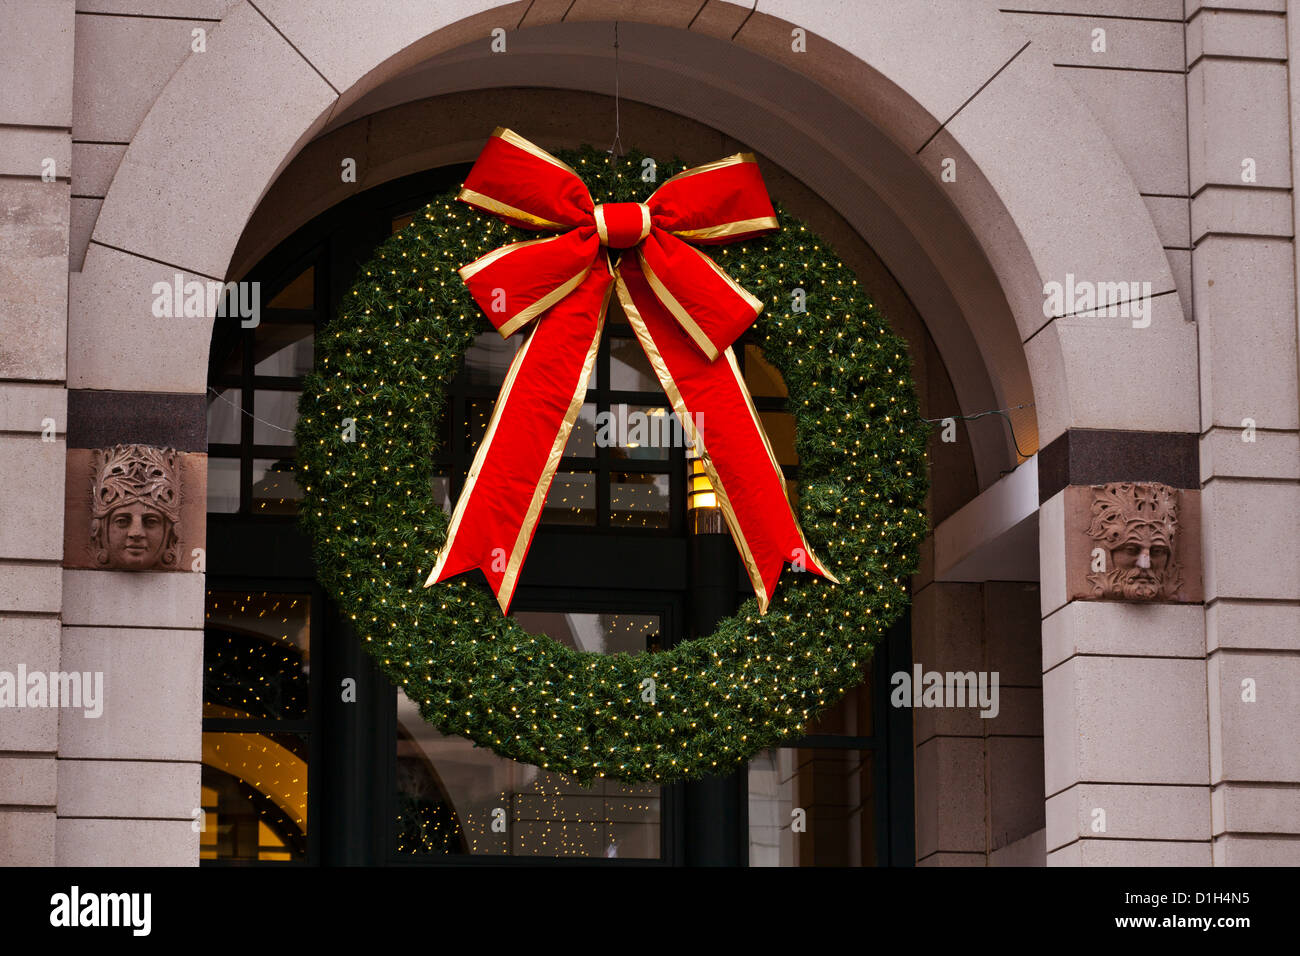 Christmas wreath over department store entrance - USA - Stock Image